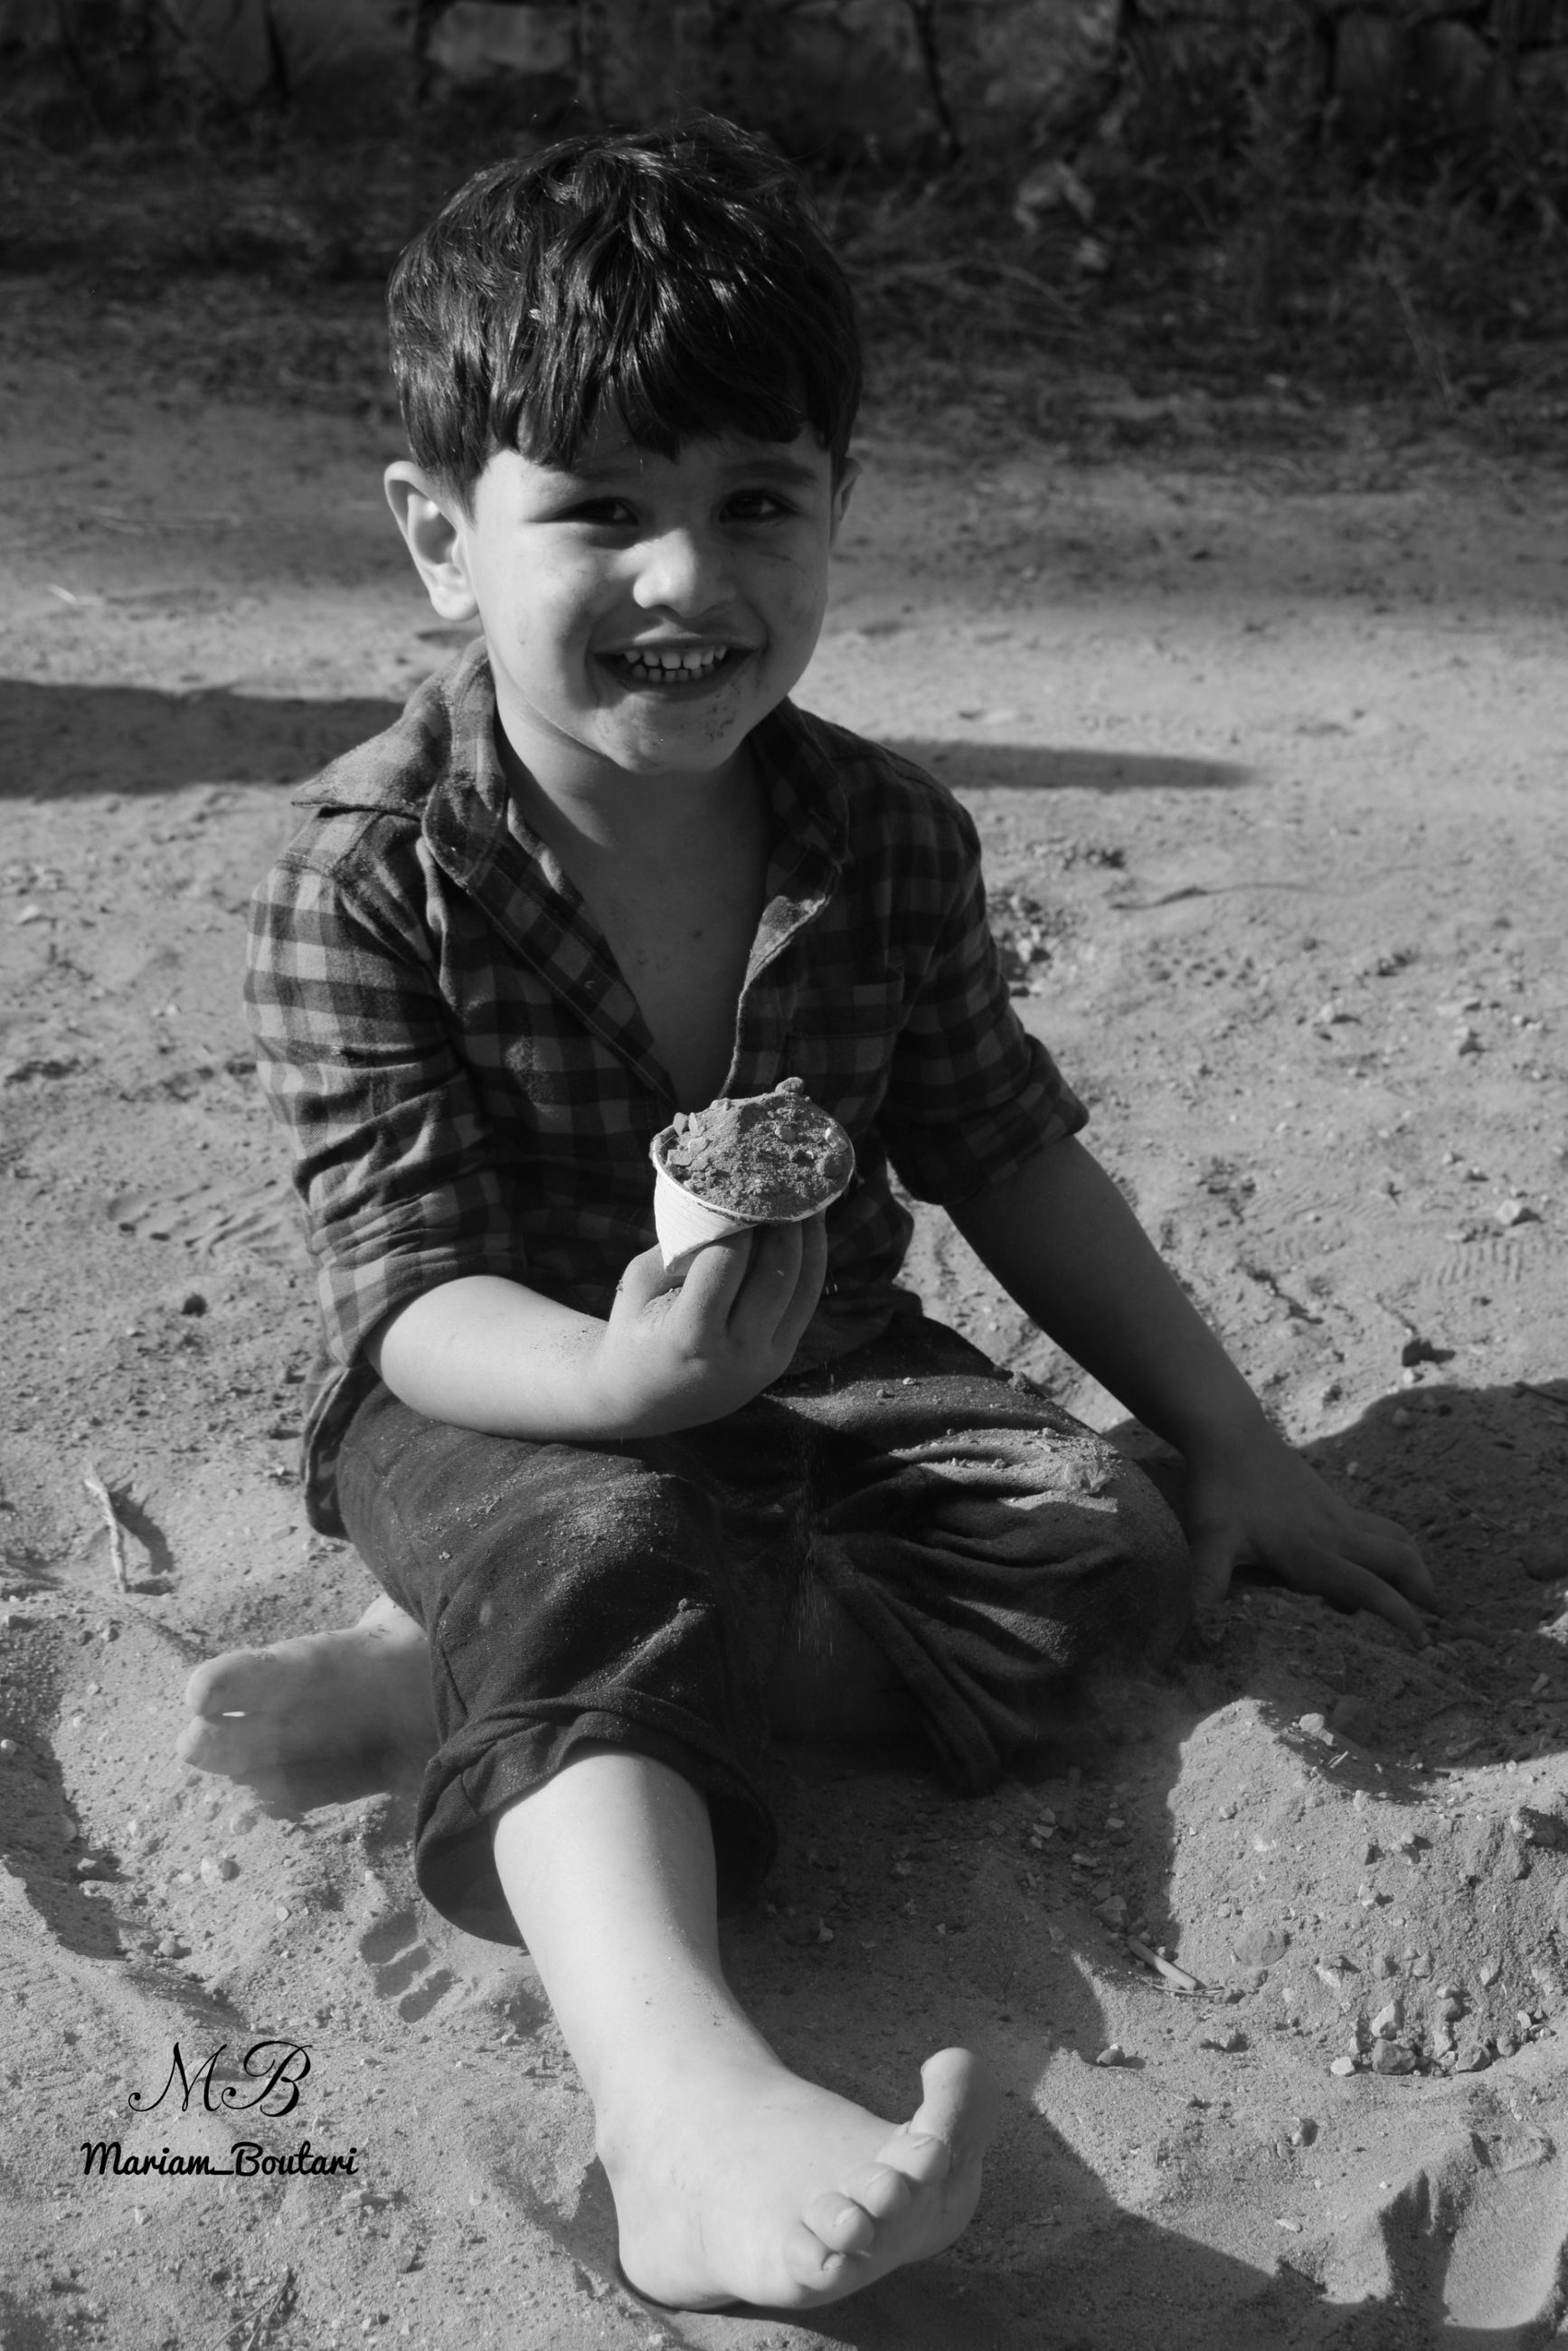 child, childhood, one person, full length, boys, men, real people, males, day, smiling, leisure activity, casual clothing, front view, lifestyles, sitting, land, emotion, happiness, outdoors, innocence